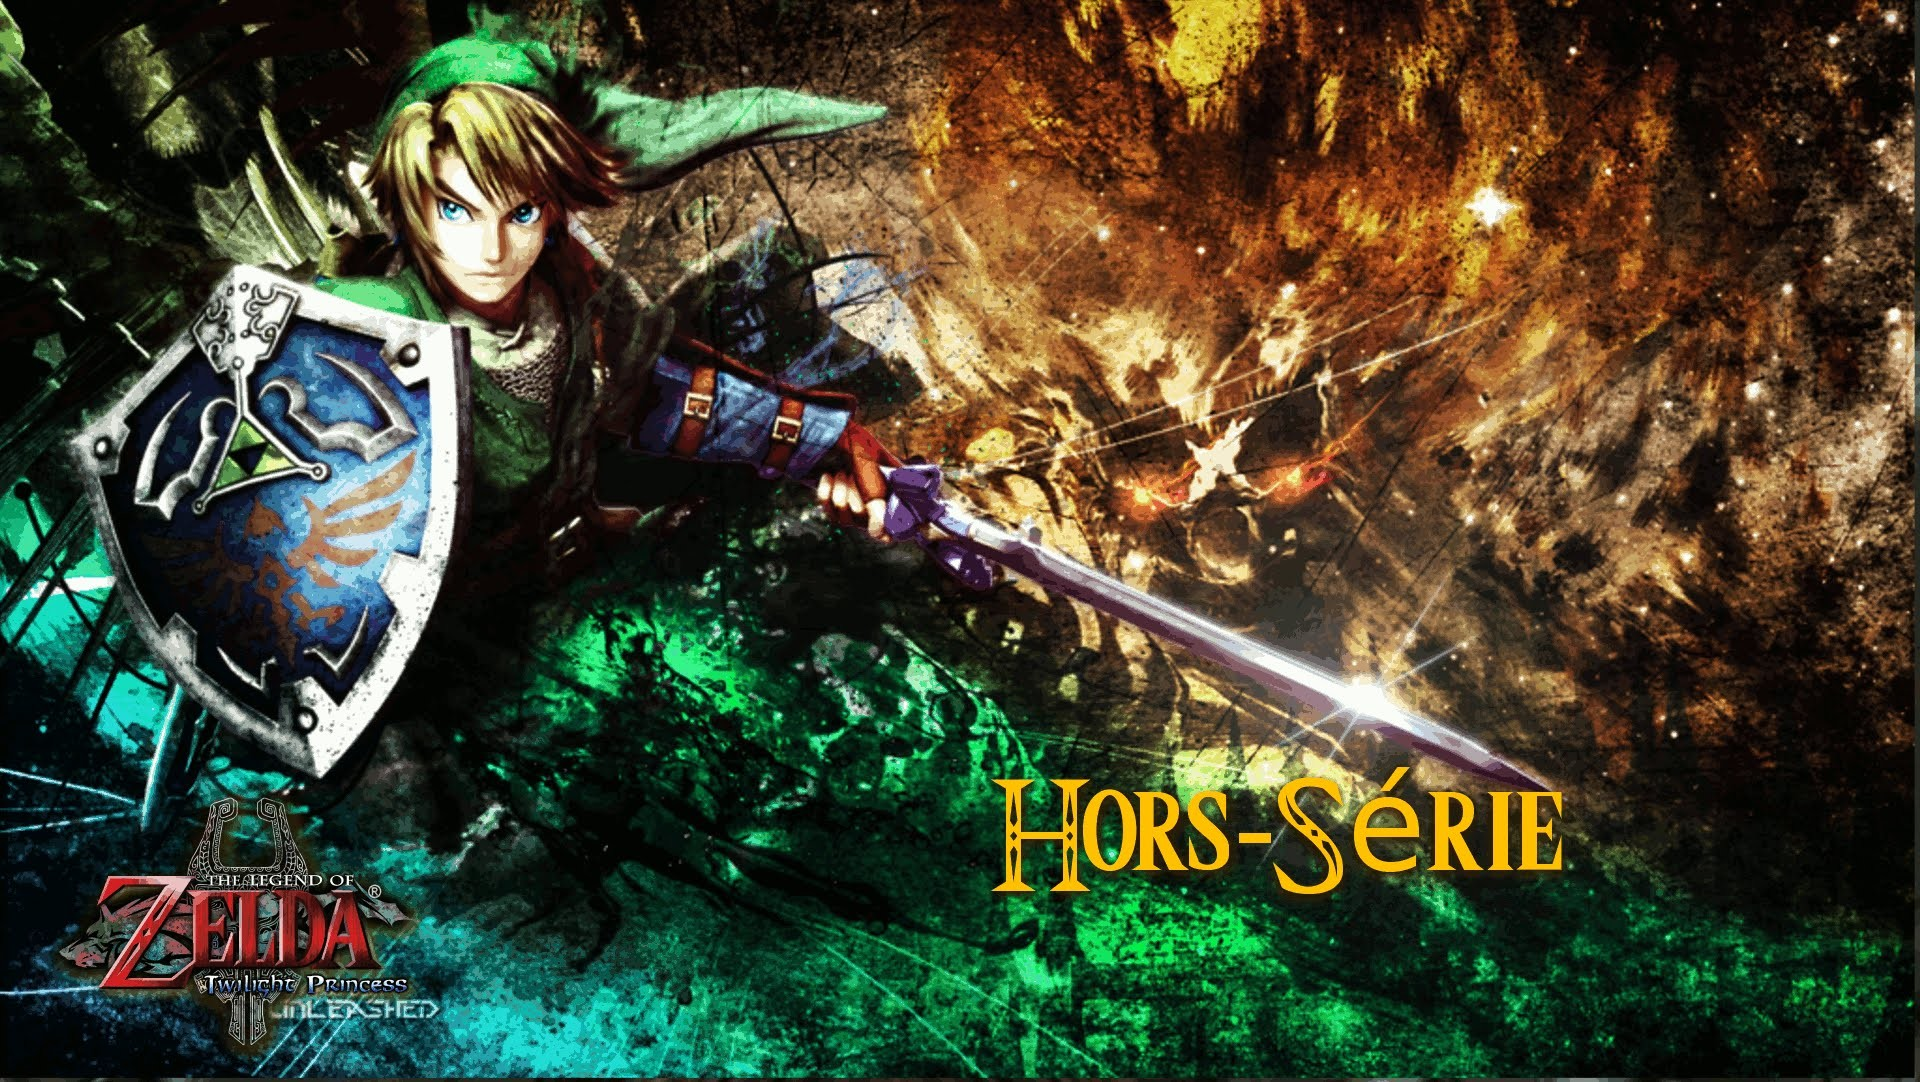 1920x1082 The Legend of Zelda Twilight Princess - Hors-Série : Loup dorée, Grand  carquois et Œil de faucon - YouTube